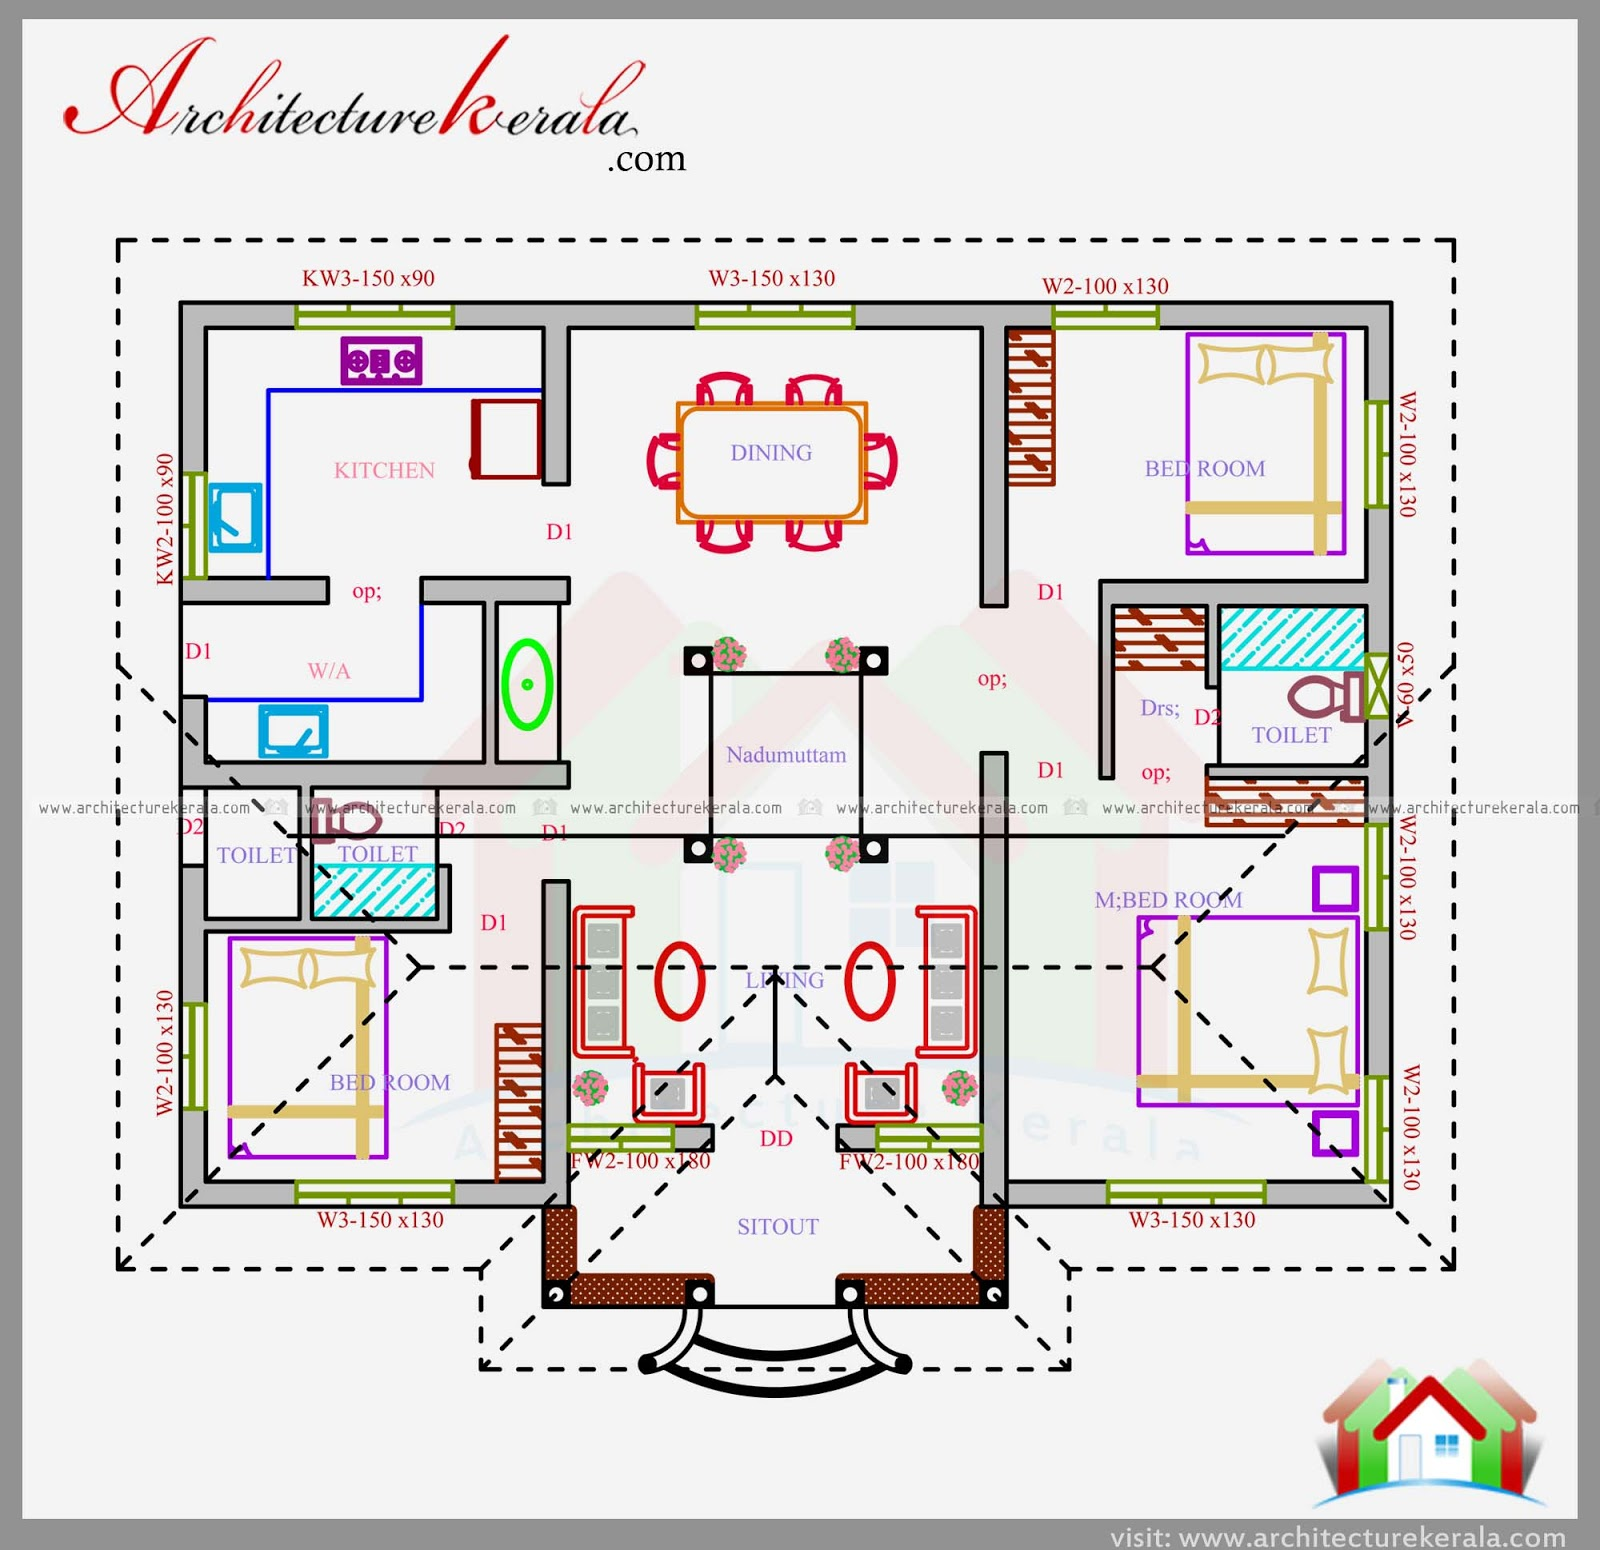 Kerala Model Home Plans: 1200 SQ FT HOUSE PLAN IN NALUKETTU DESIGN